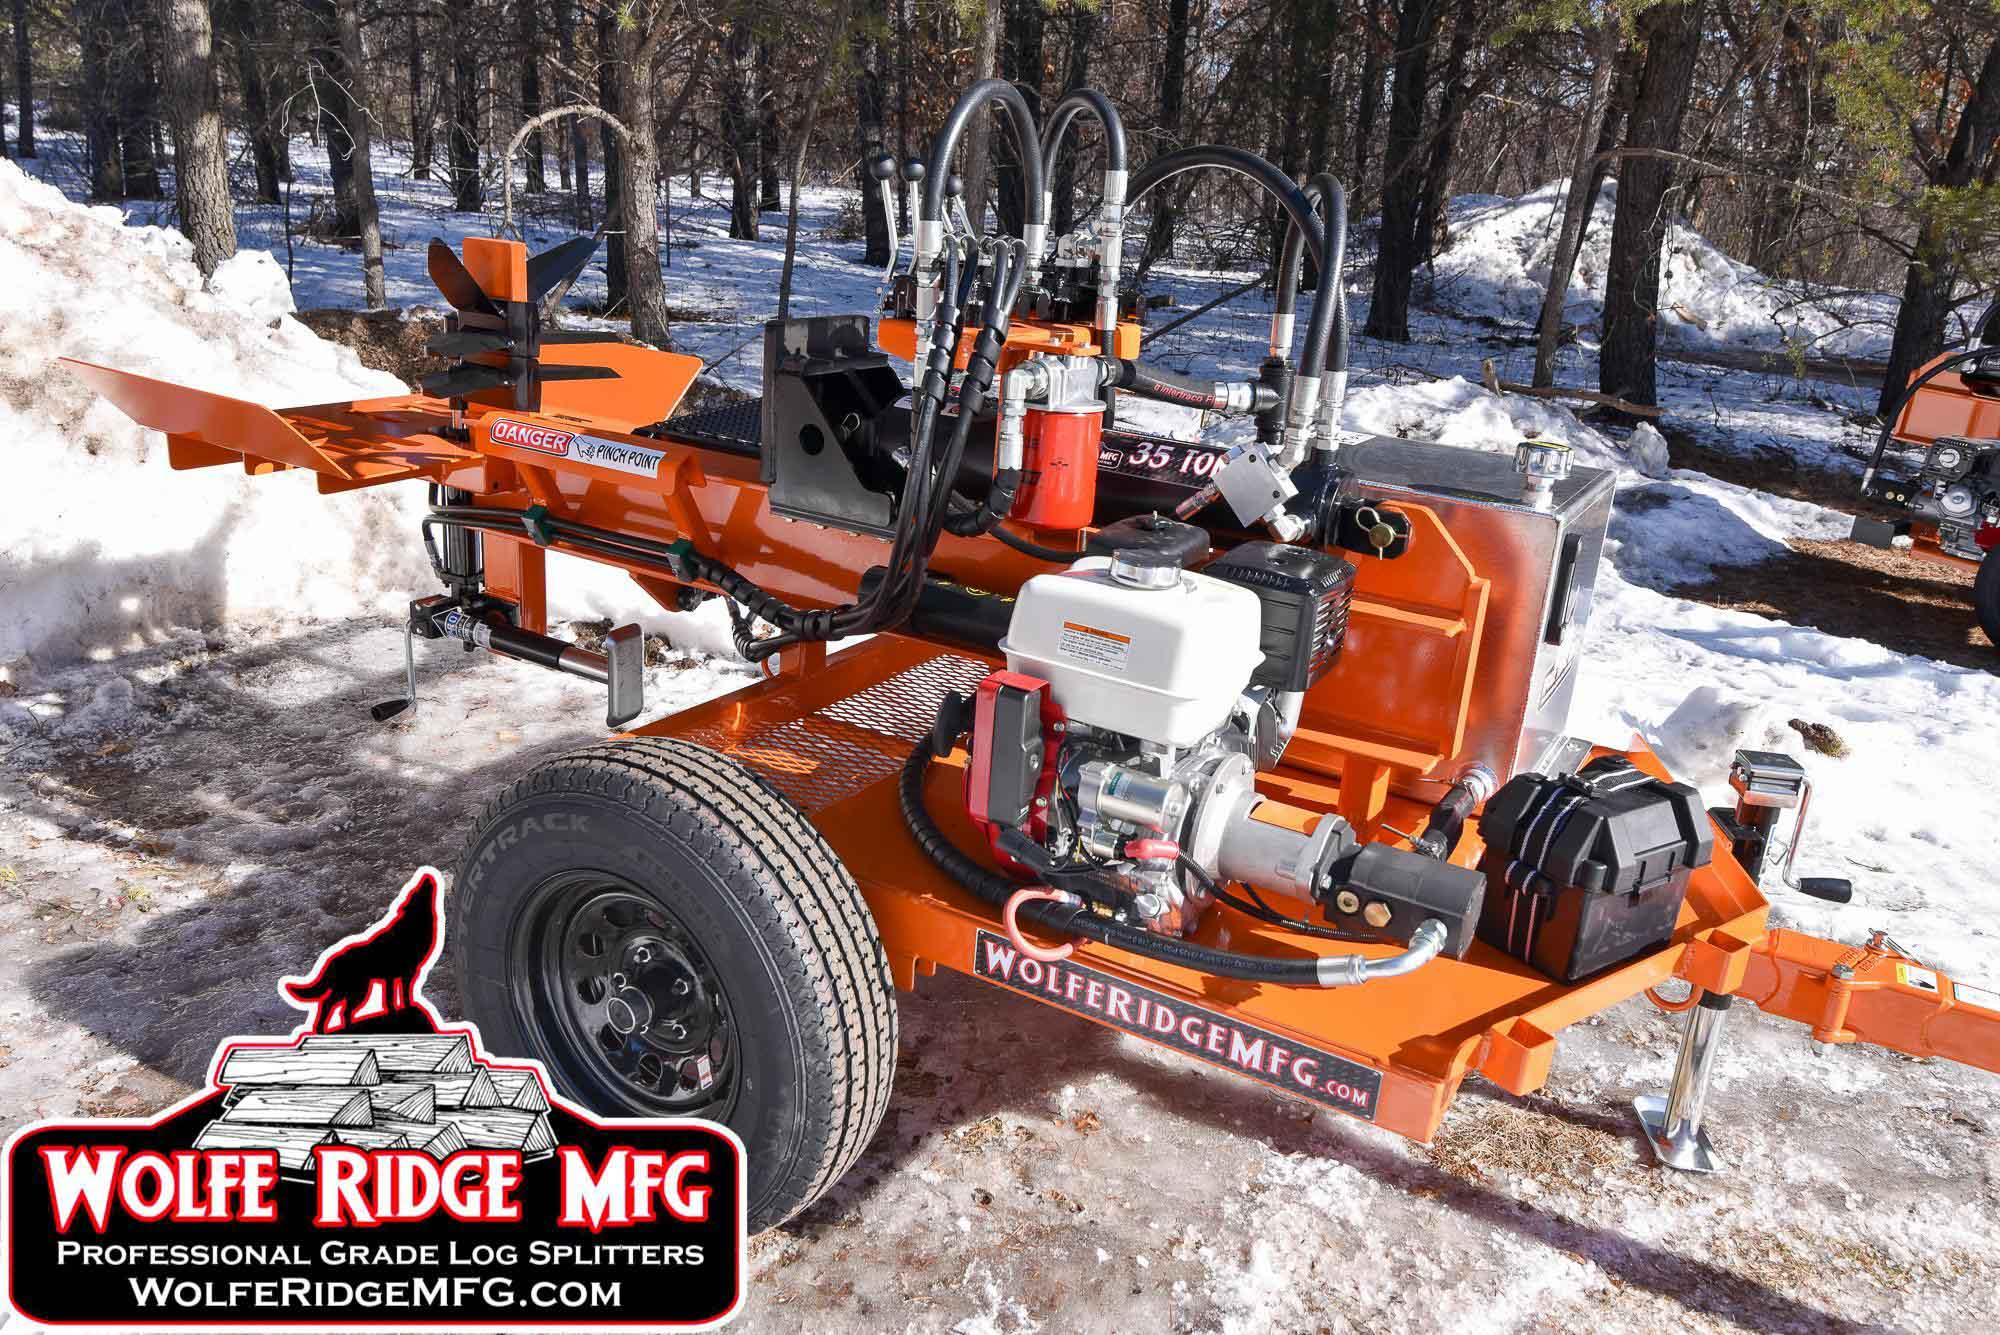 Wolfe Ridge MFG Commercial Log Splitter